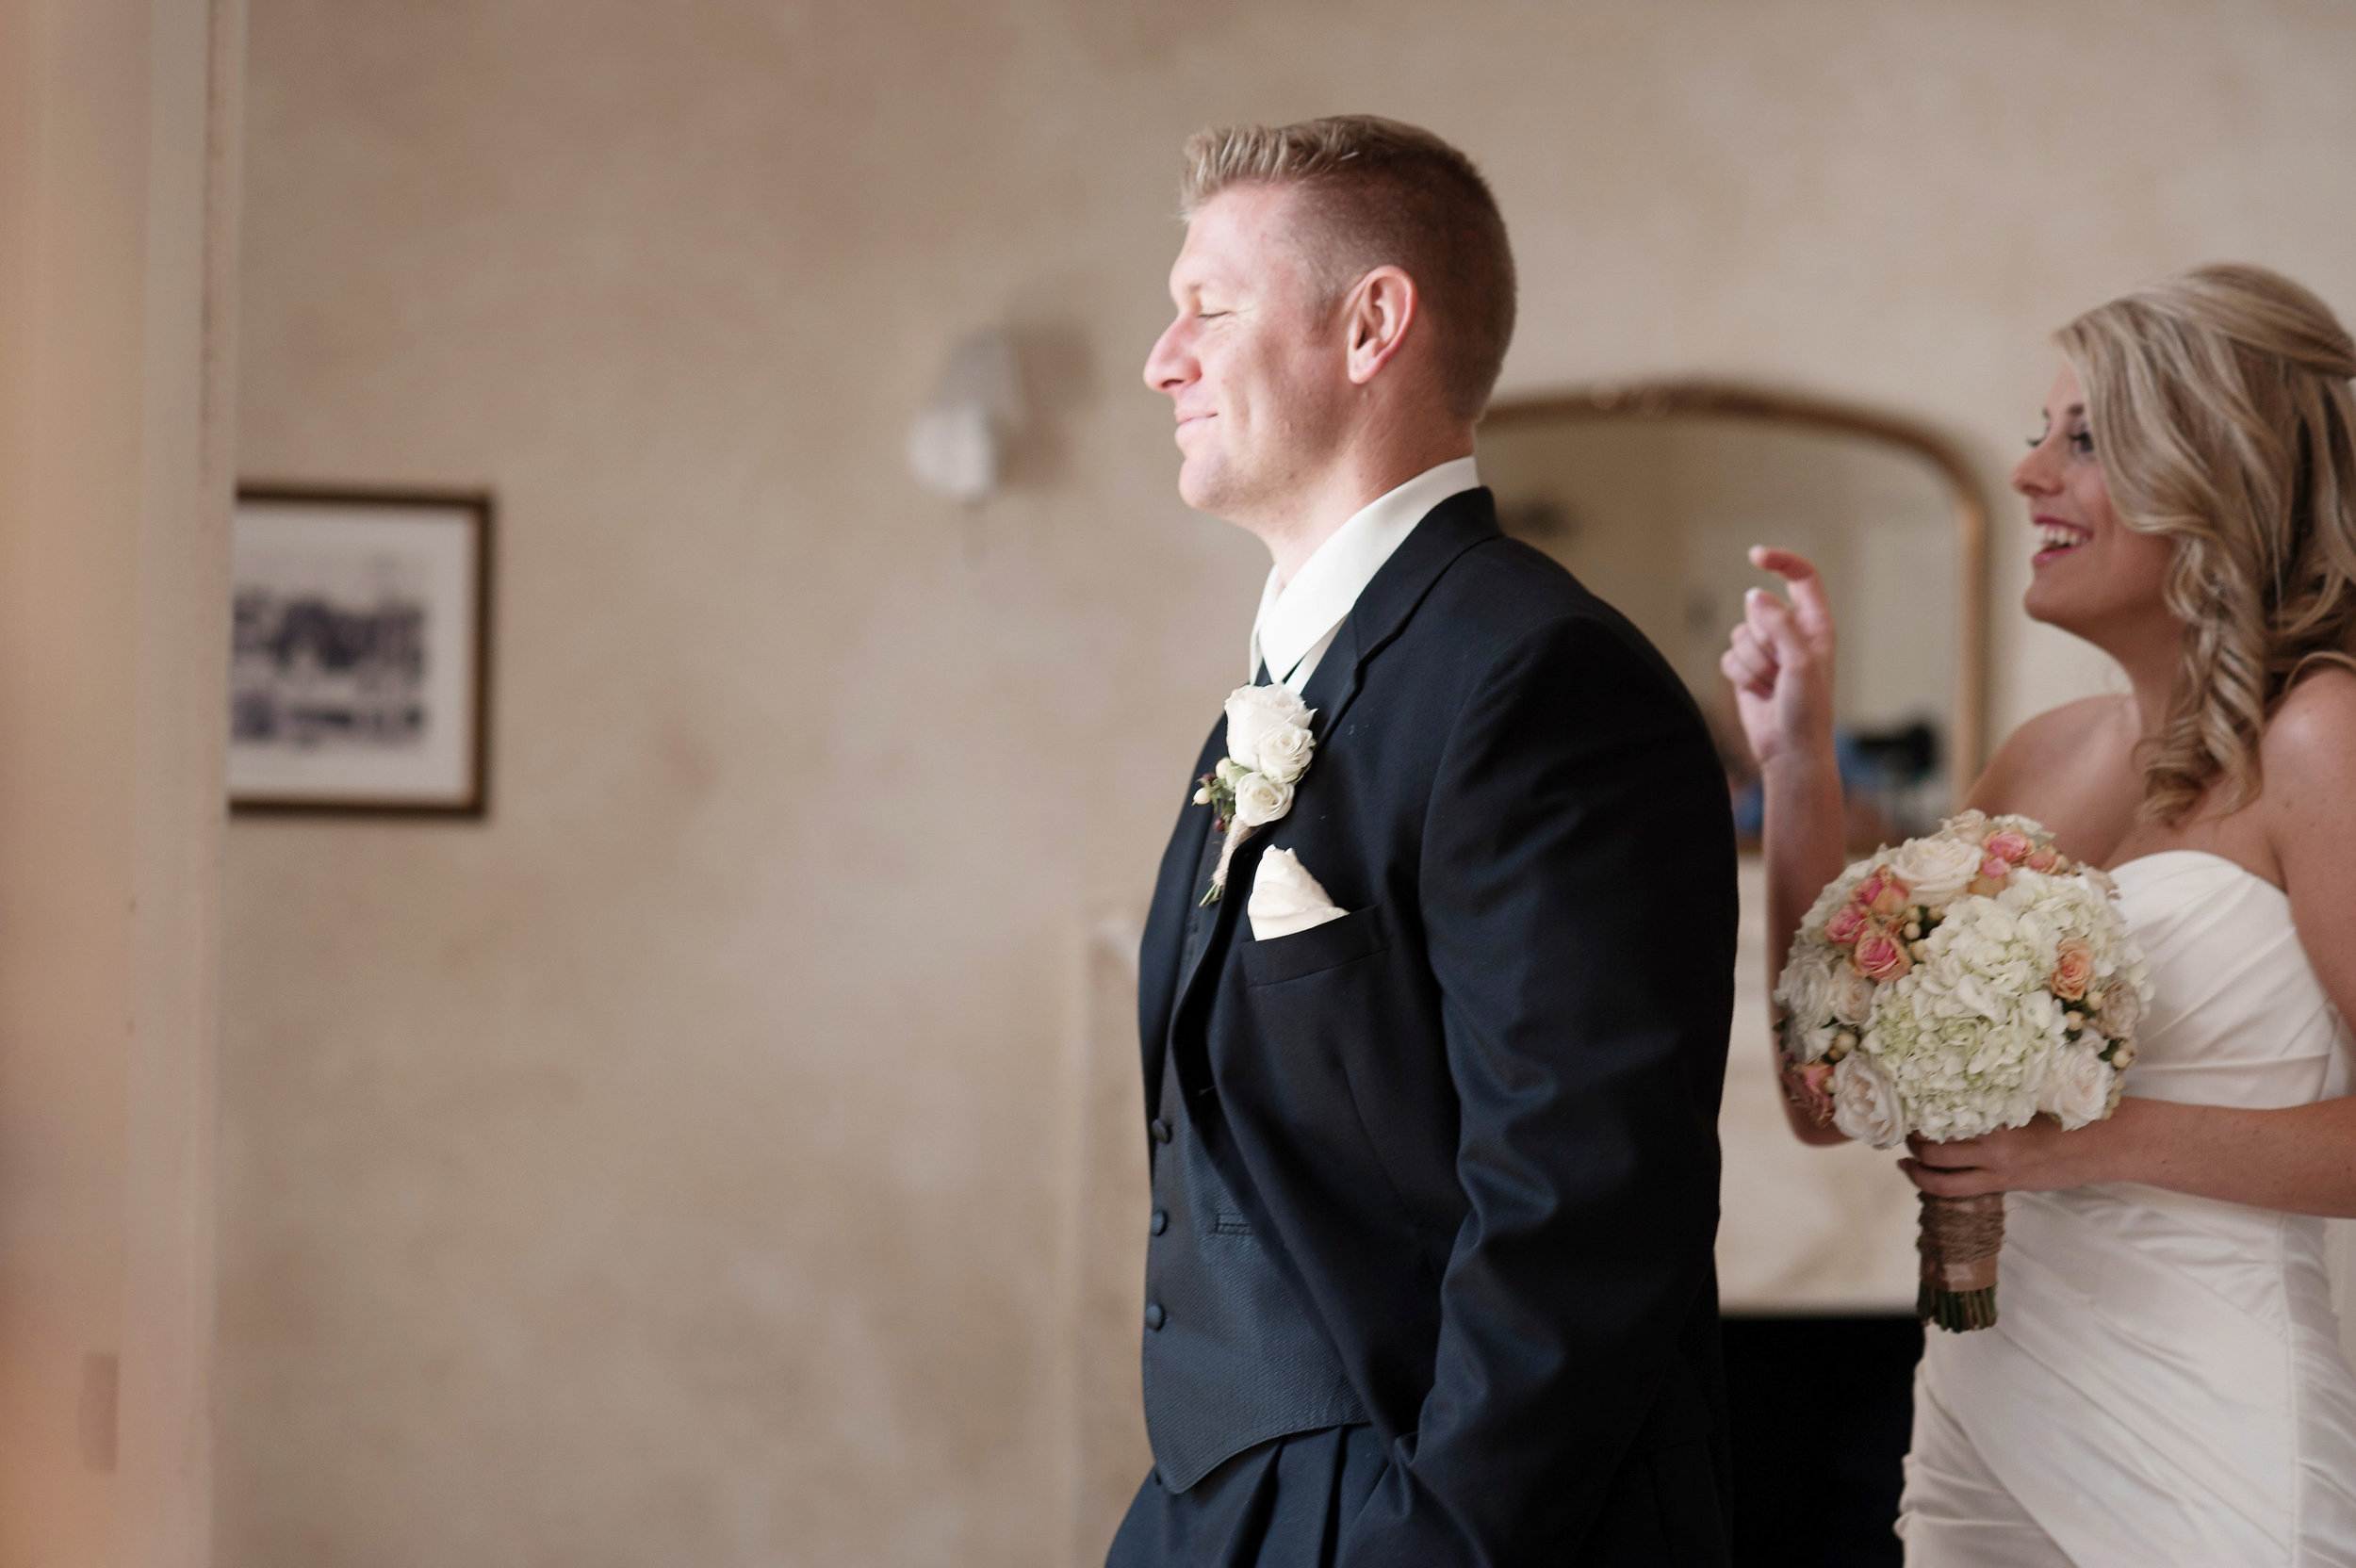 The bride and groom shared an intimate first look before the ceremony